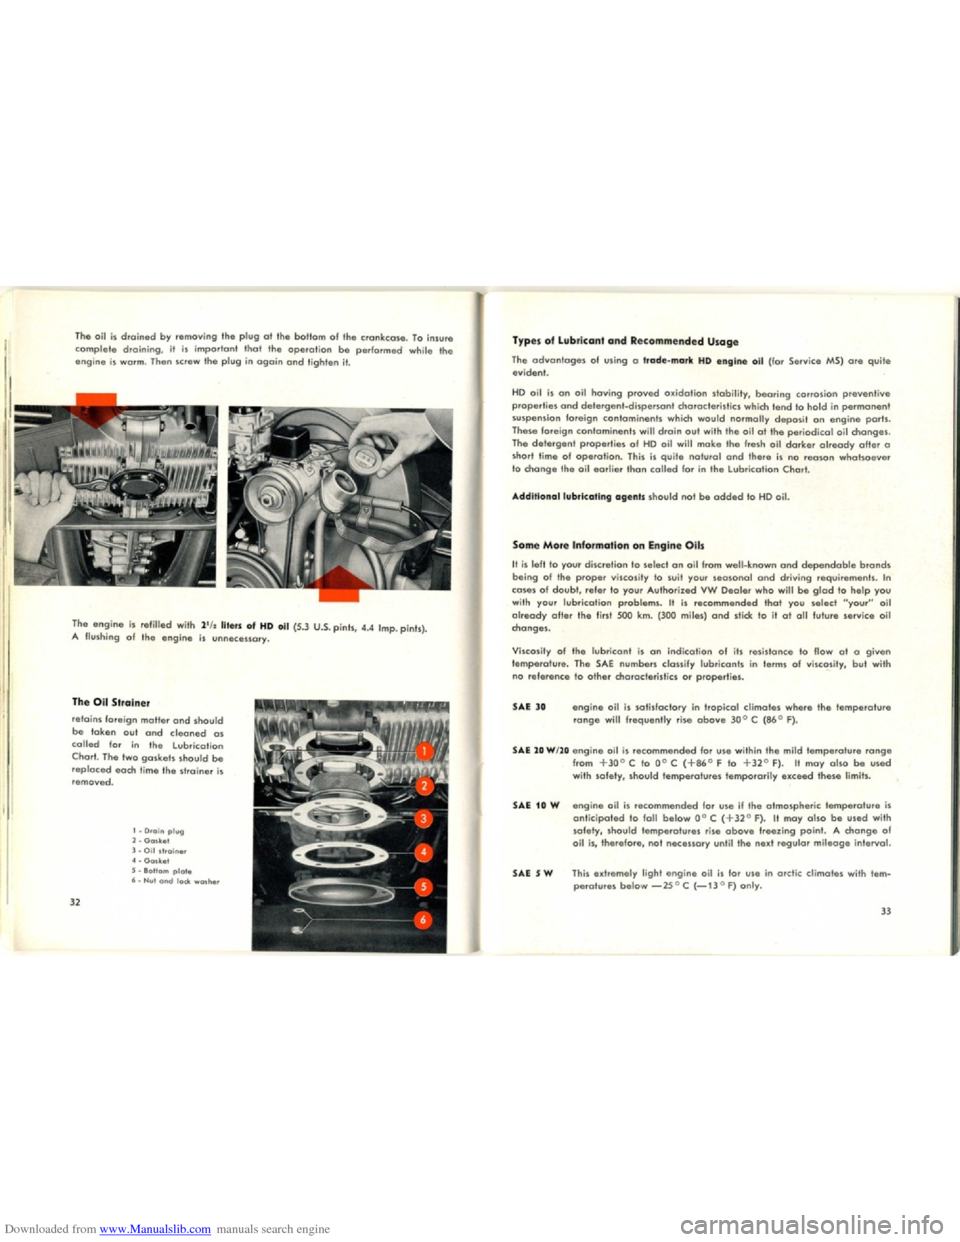 VOLKSWAGEN KARMANN GHIA 1958 1.G Owners Manual, Page 18